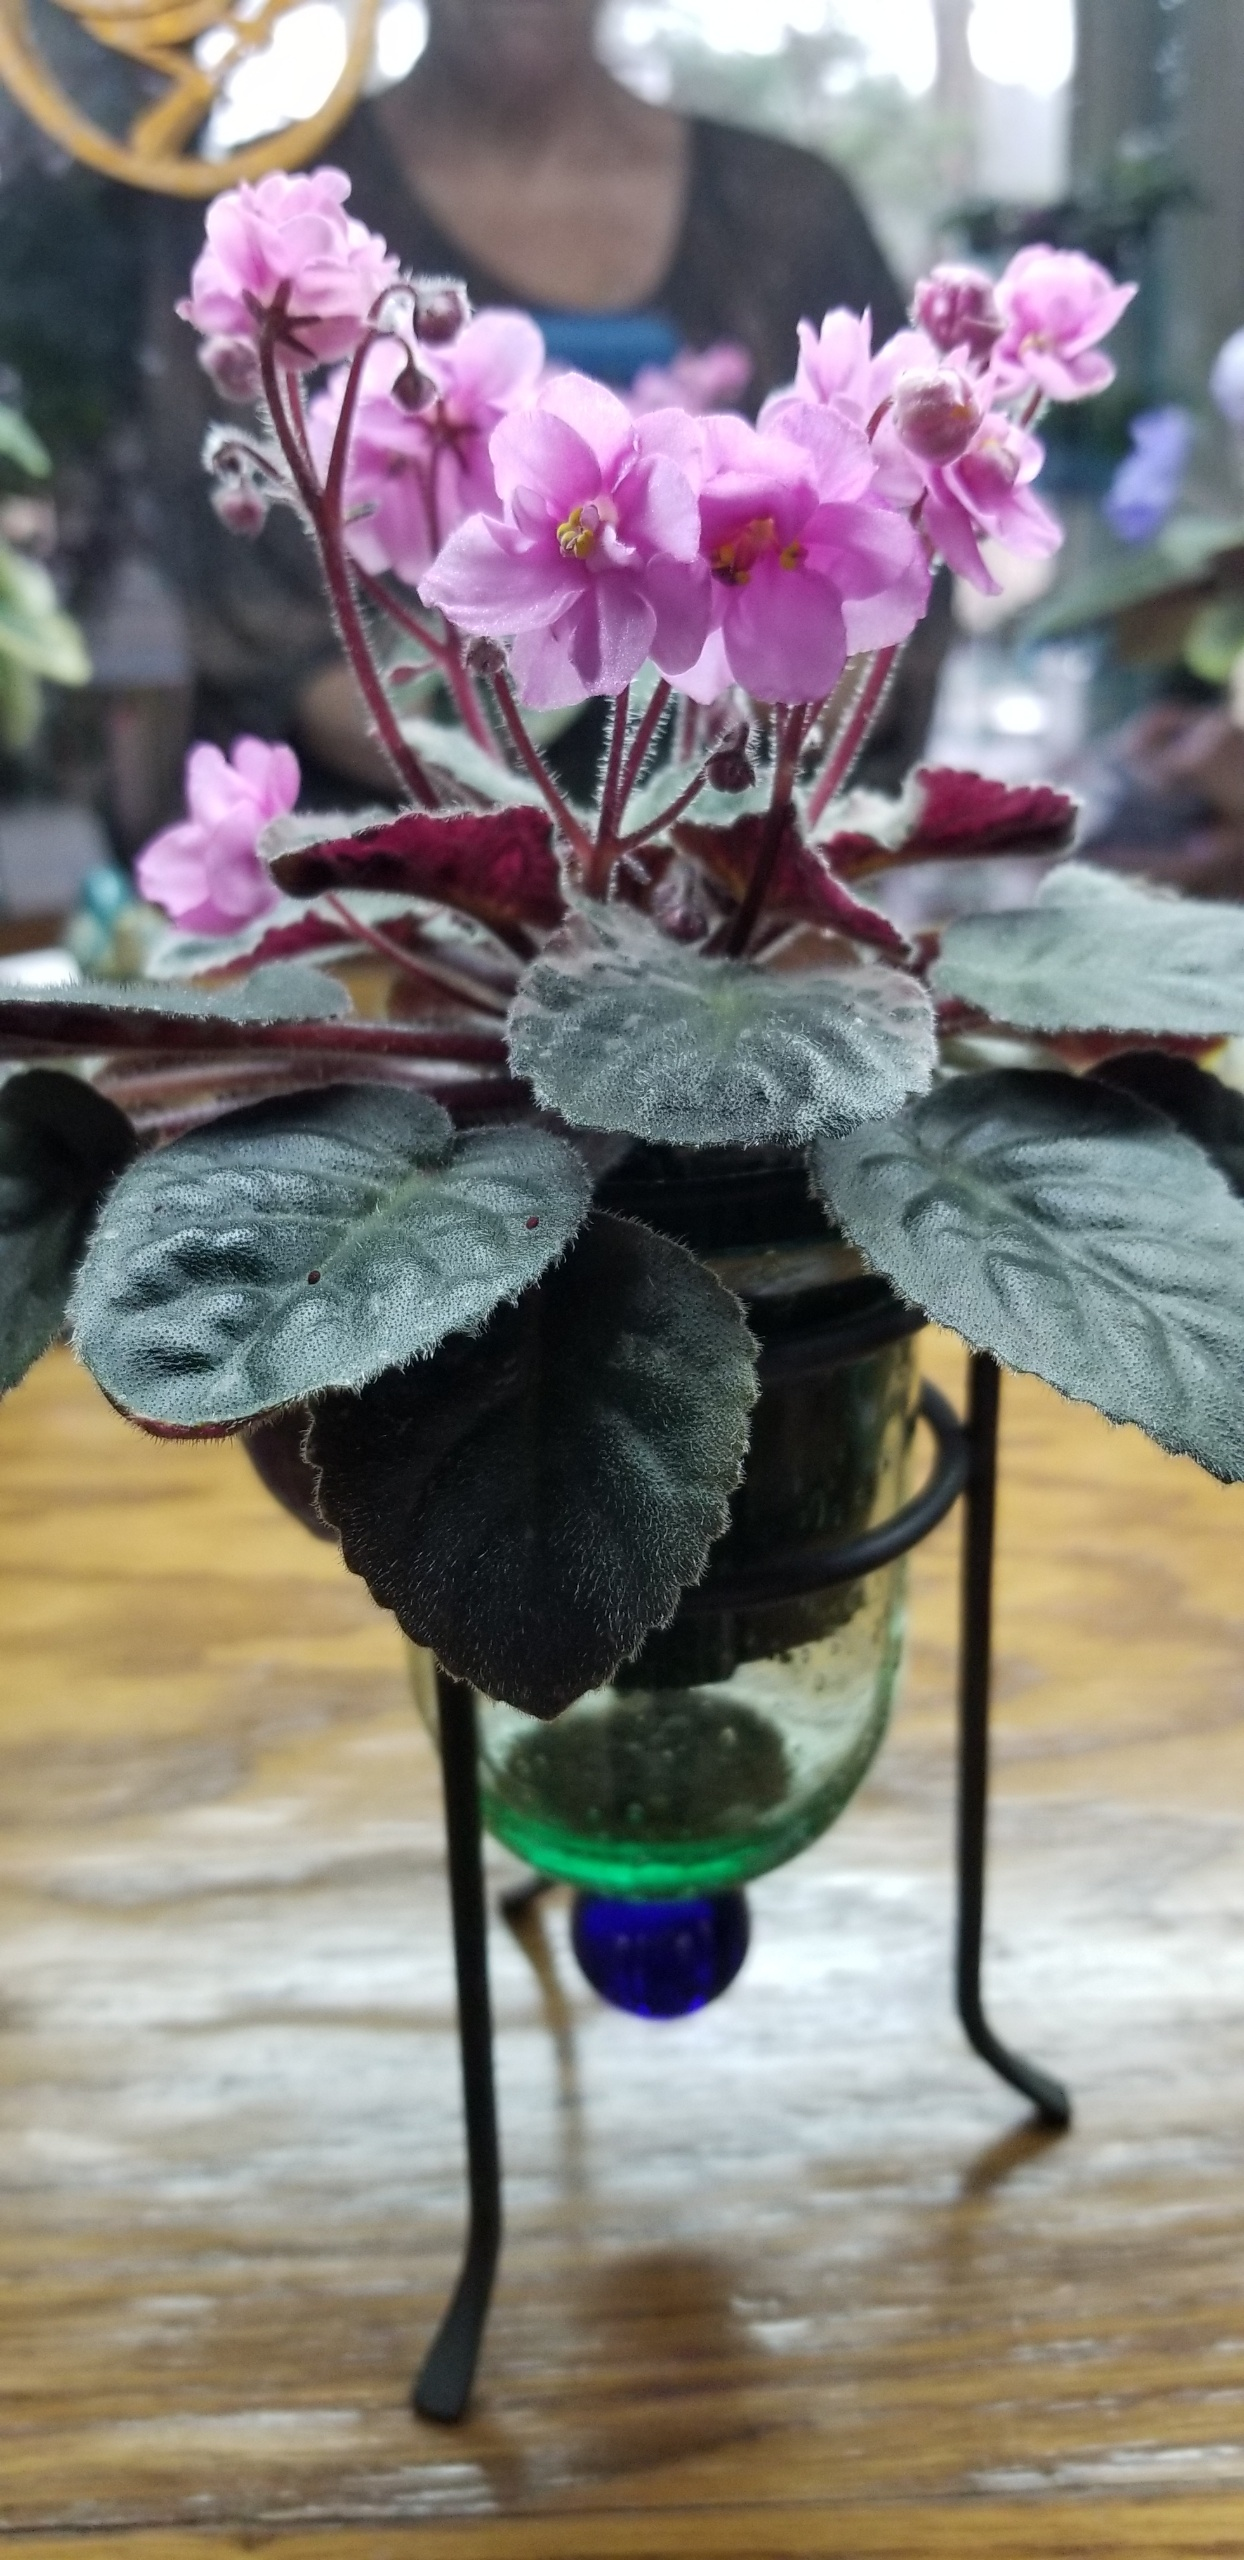 Double bright pink, 2-tone wavy bloom,  semi-miniature, trailer,  variegated leaves in center of plant pinkish variegation, plain